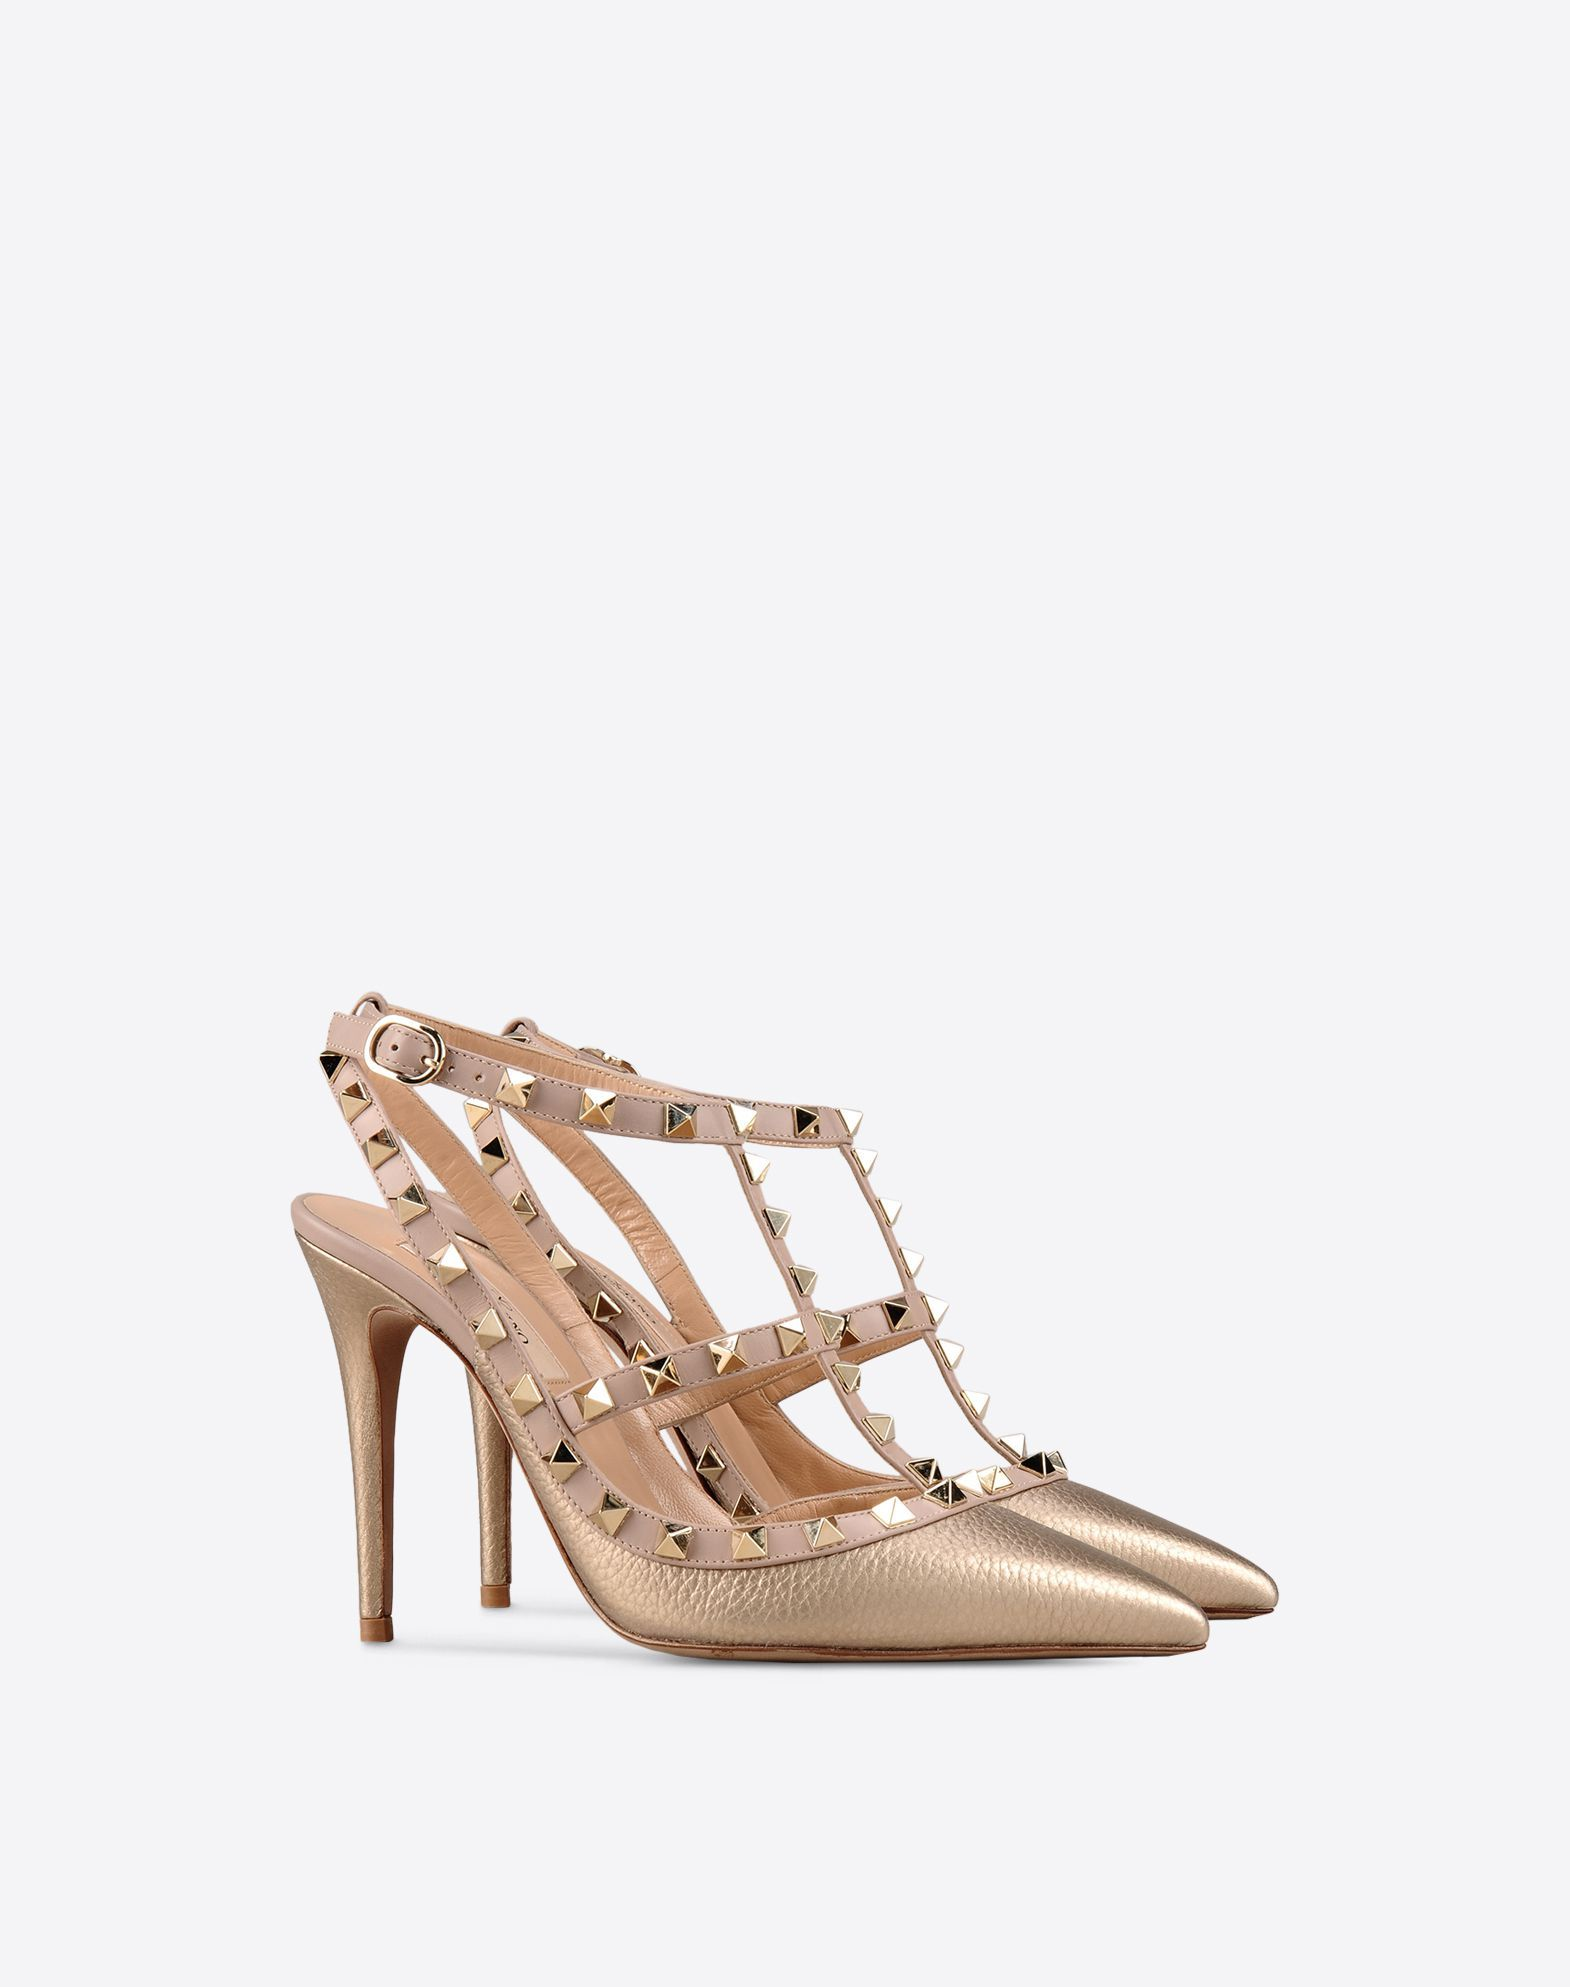 453ab32ff5bfe Metallic Grain calfskin leather Rockstud caged Pump 100mm for Woman |  Valentino Online Boutique